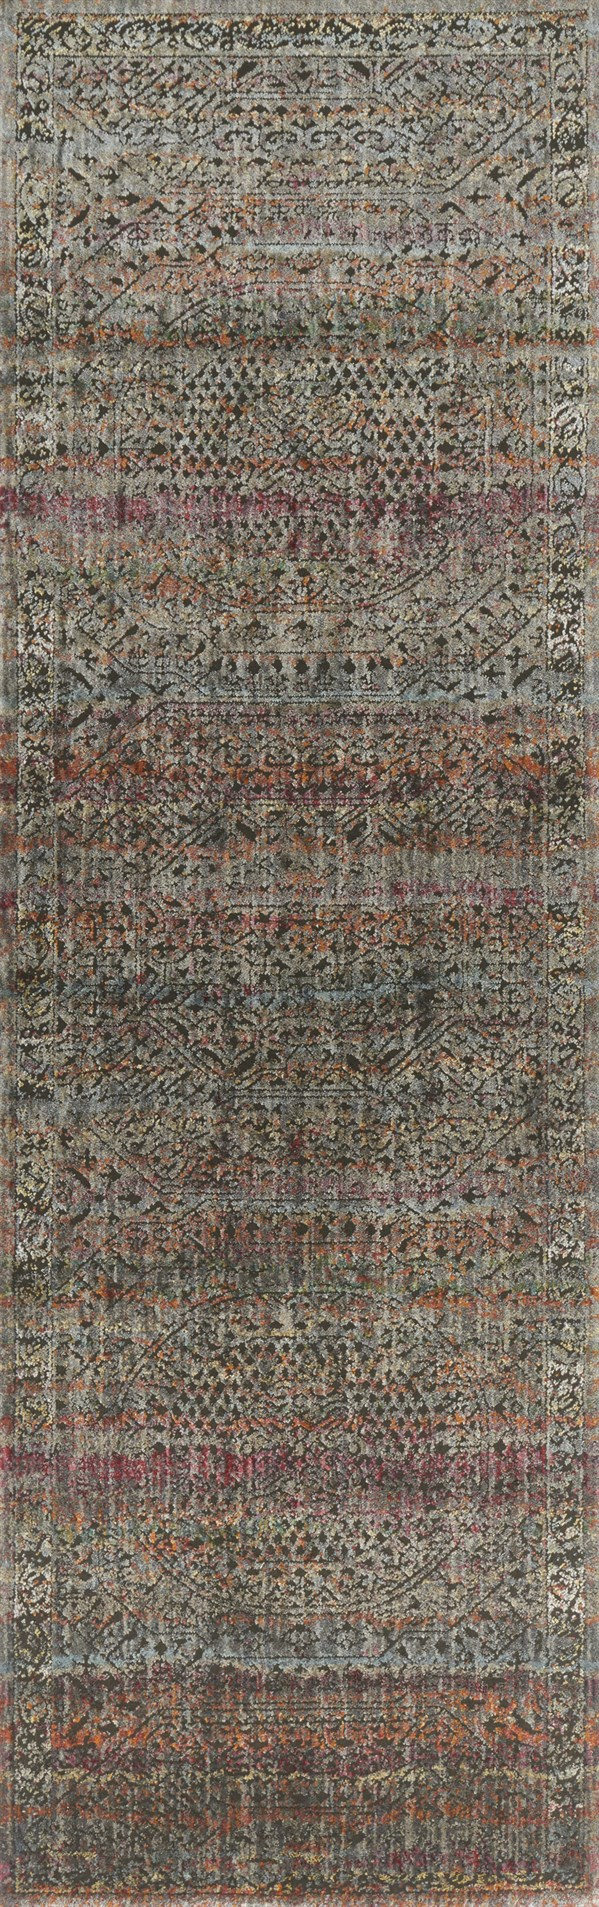 Charcoal, Sunset Vintage / Overdyed Area Rug